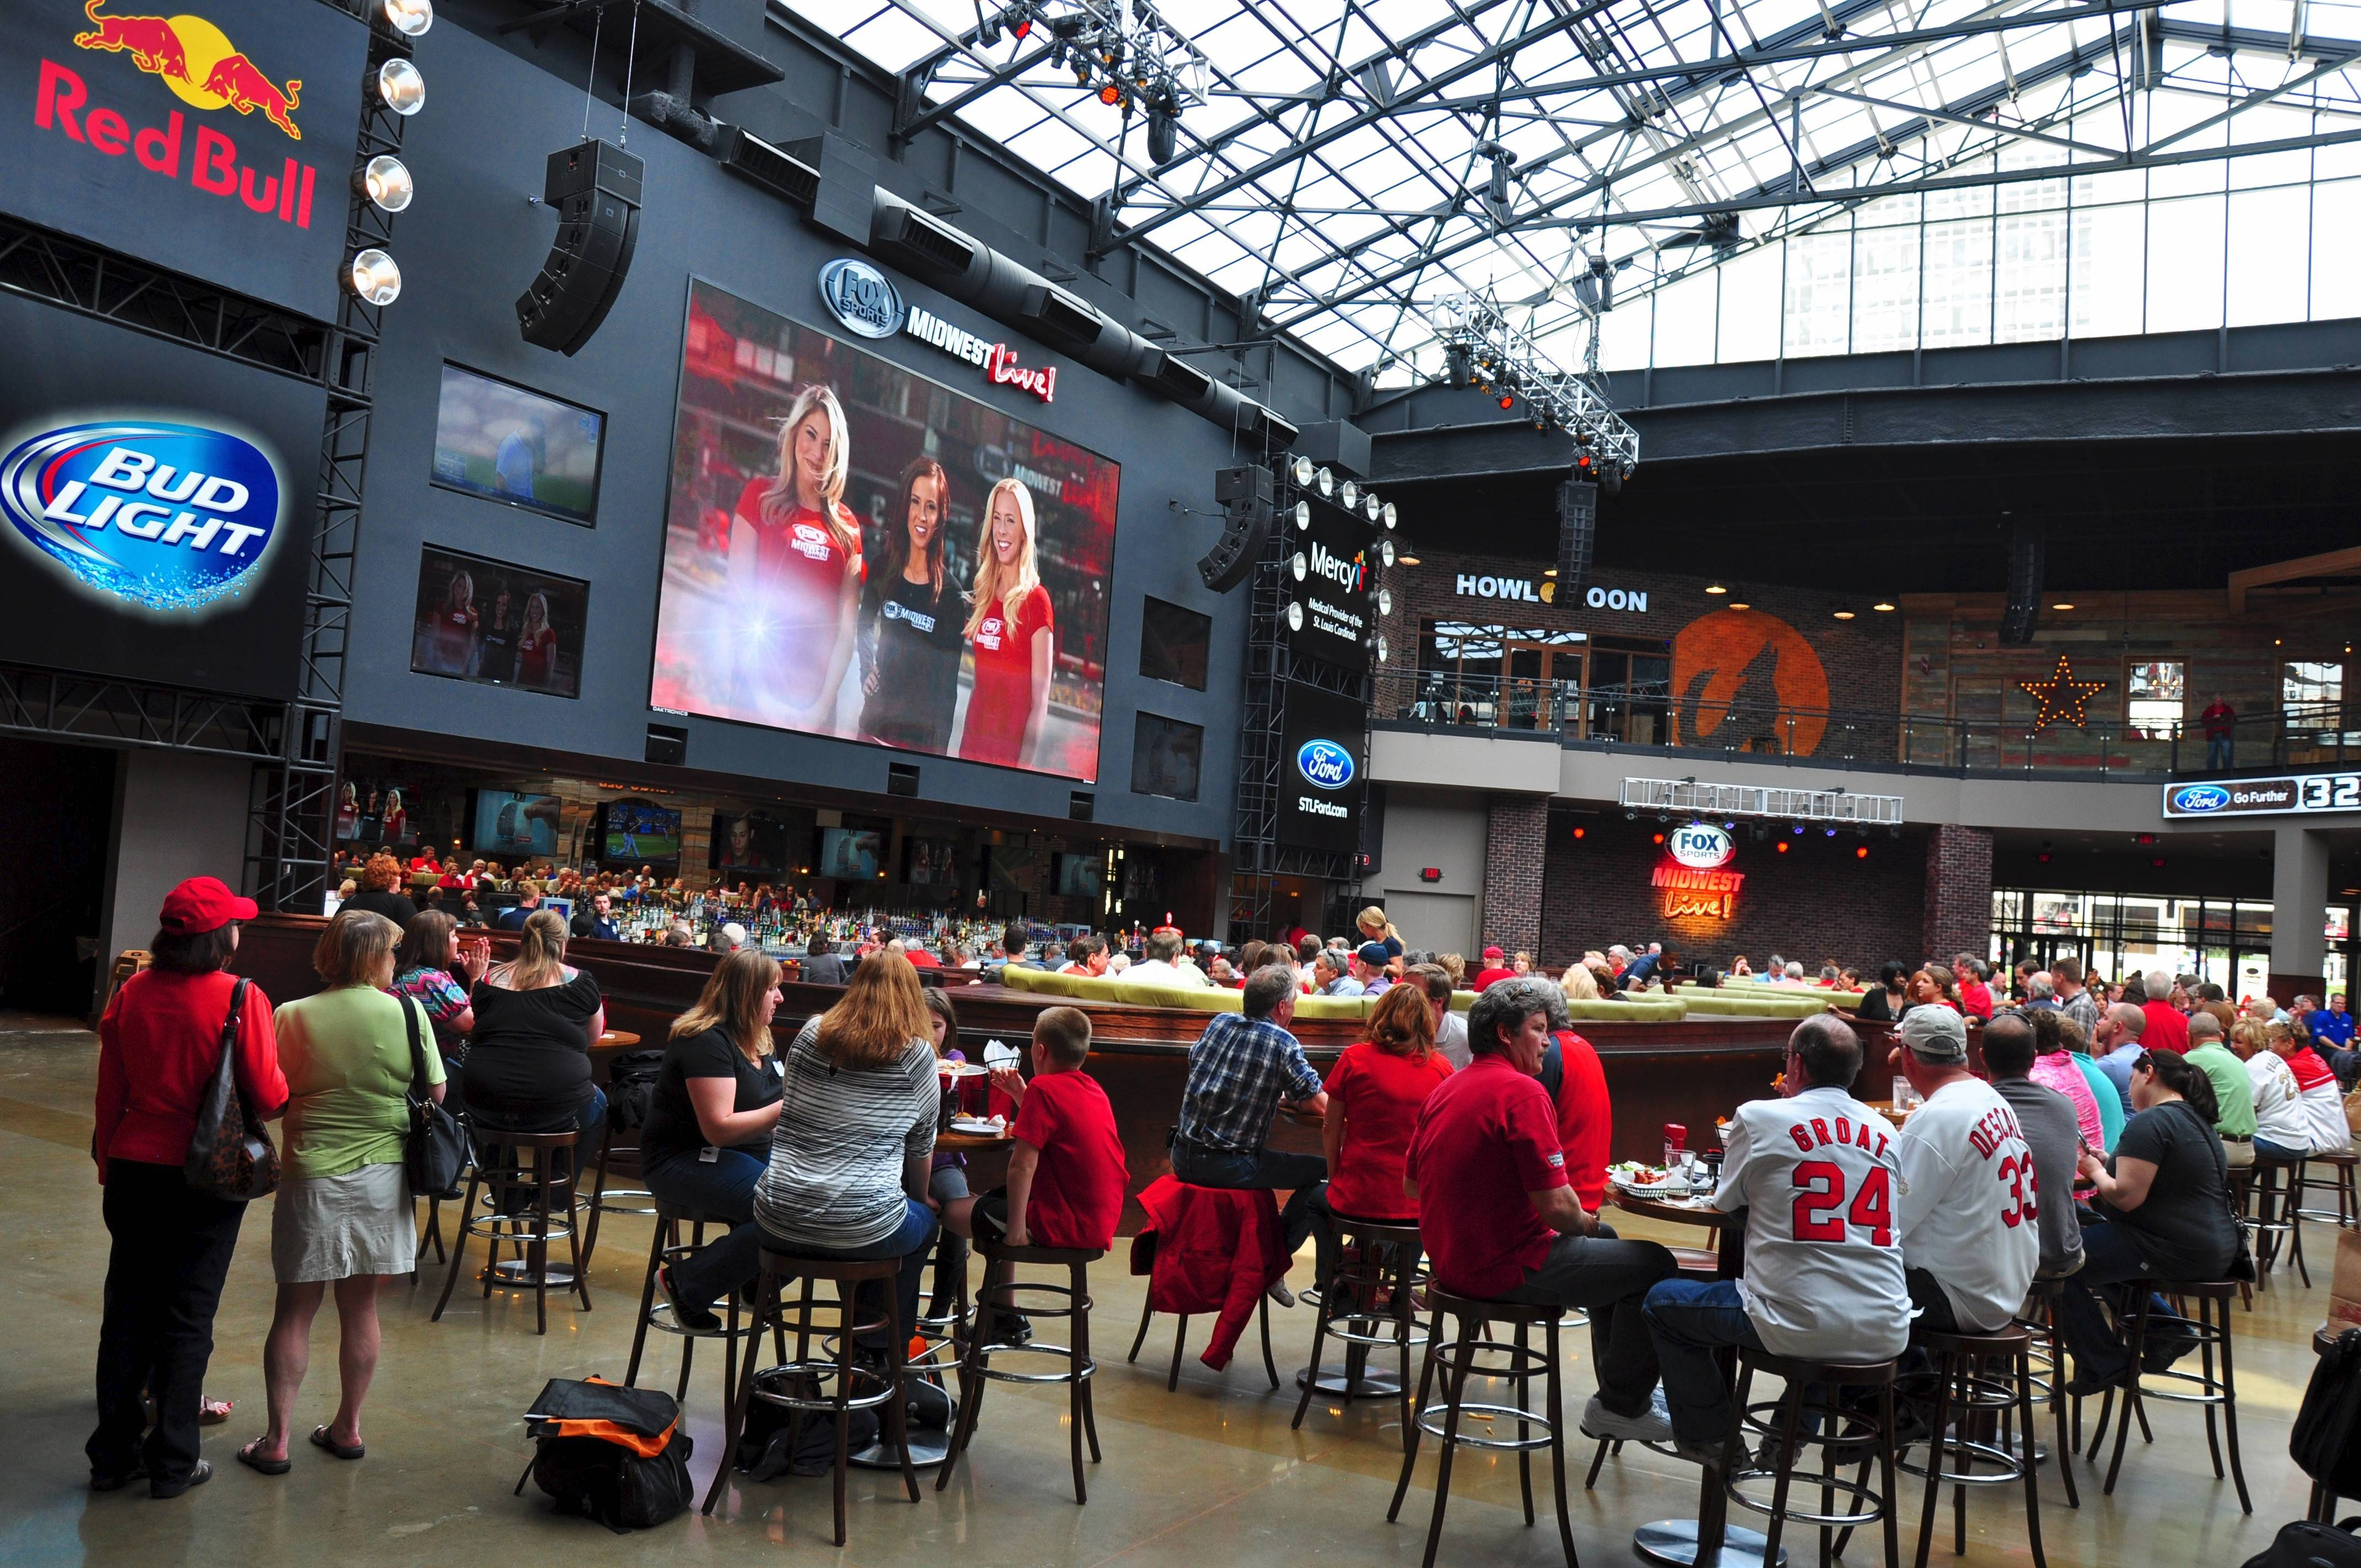 The atrium inside Ballpark Village is covered by a retractable glass roof. Fans can watch sporting events on a giant video screen while enjoying food and drink in climate-controlled comfort.